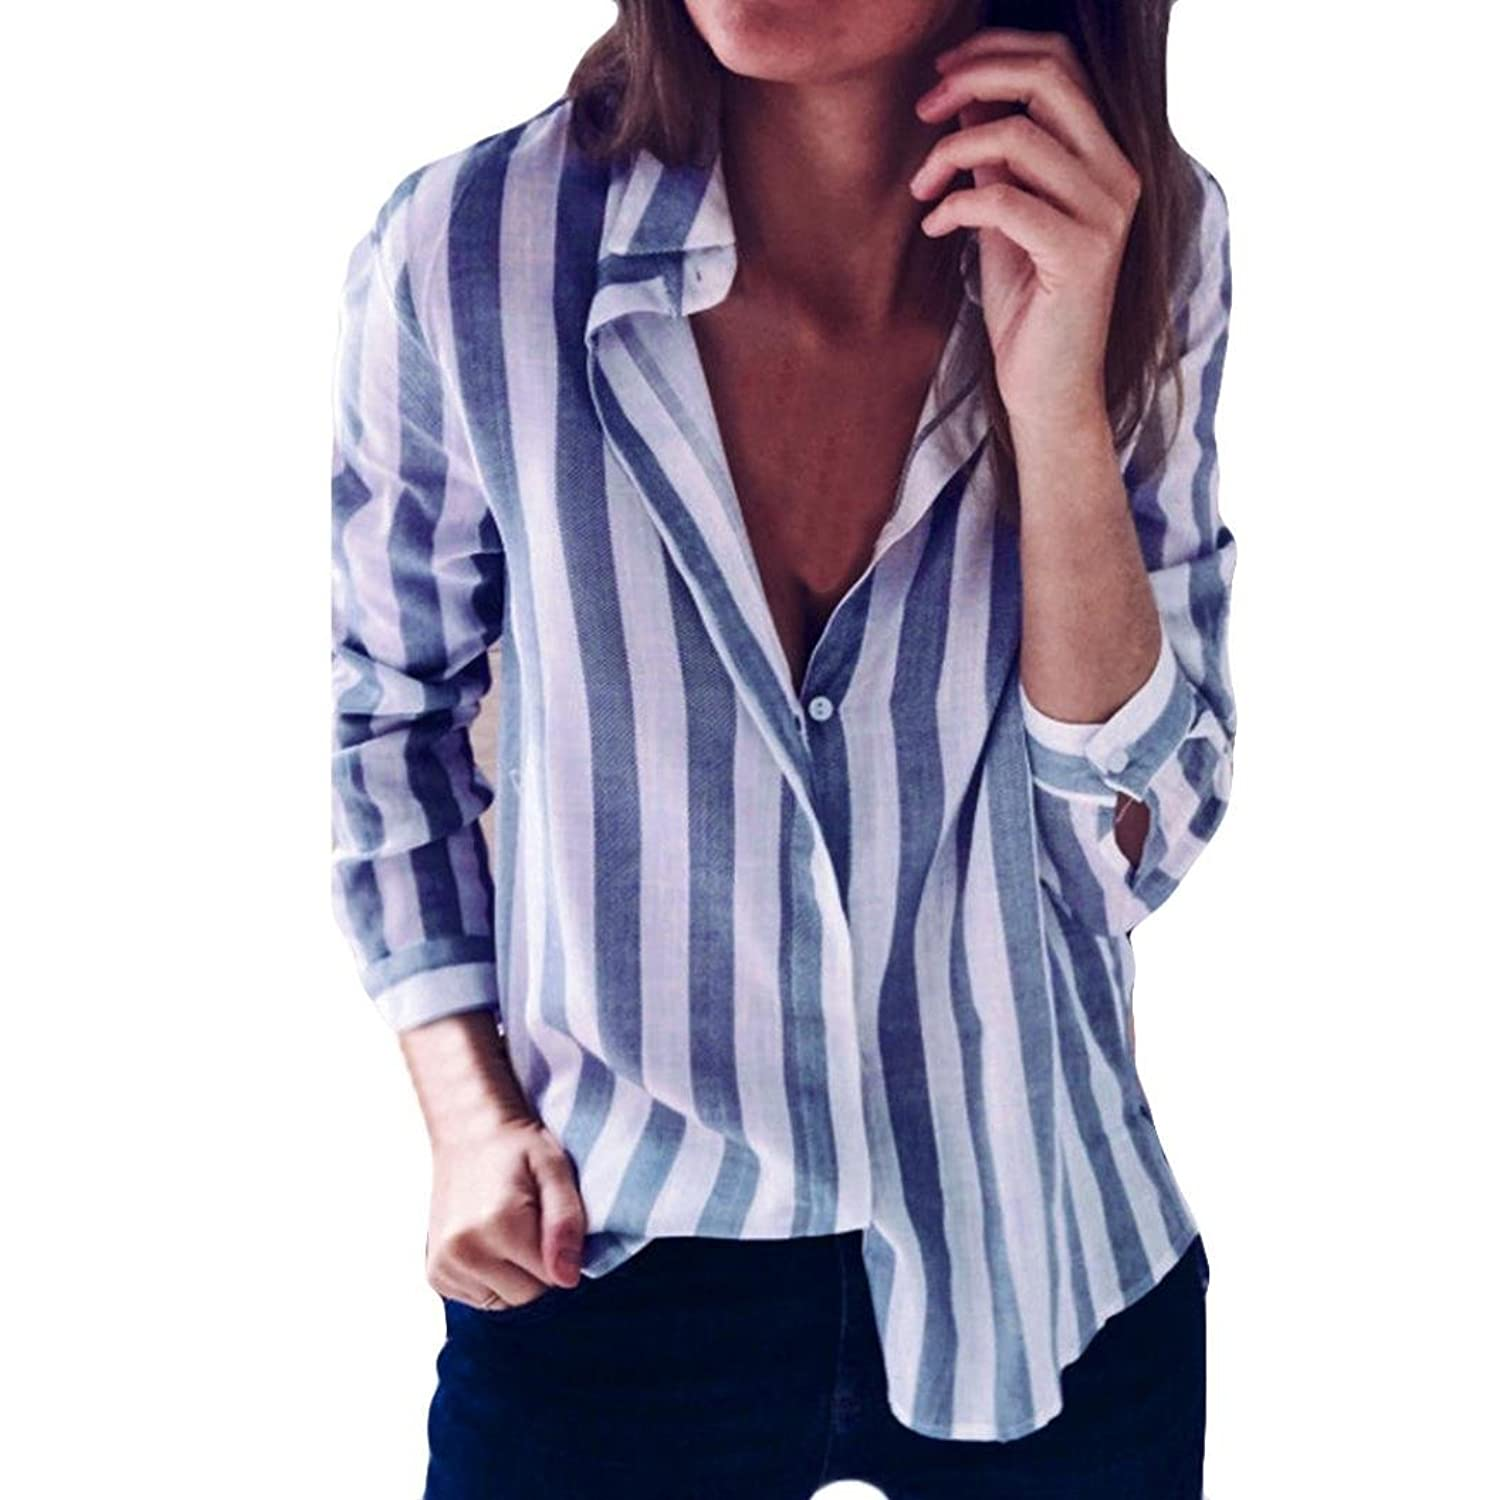 01a12d8f8f Material:Polyester fiber. Pattern Type:Stripe Style:Casual, Collar:Turn  Down Collar Length:Regular Sihouette:Pencil Fit:Fits ture to size